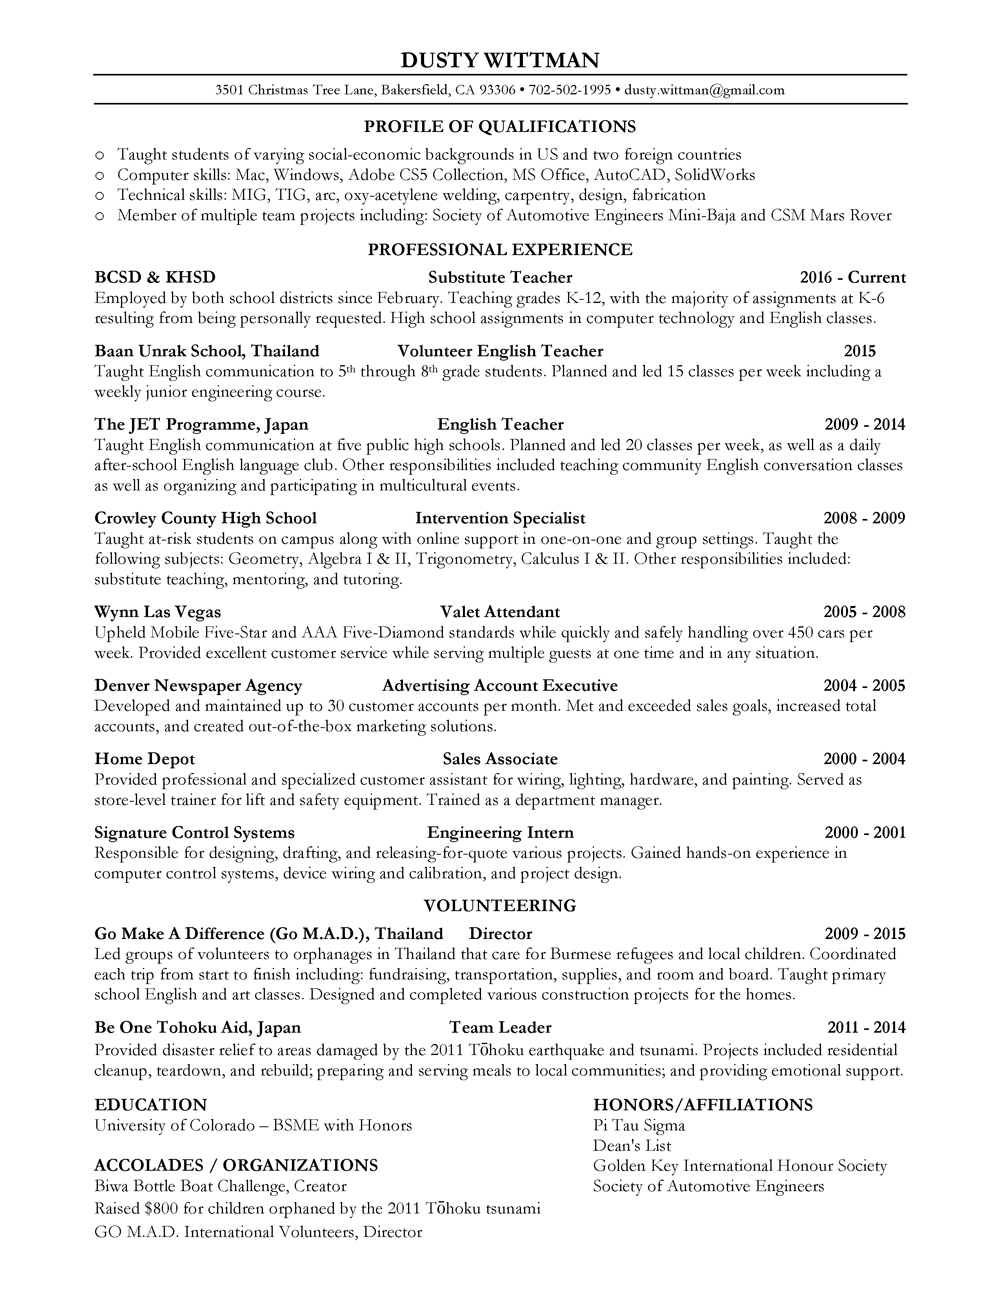 grade english teacher resume art samples assessment and rubrics grade english teacher resume art samples work history wittman portfolio wittman resume